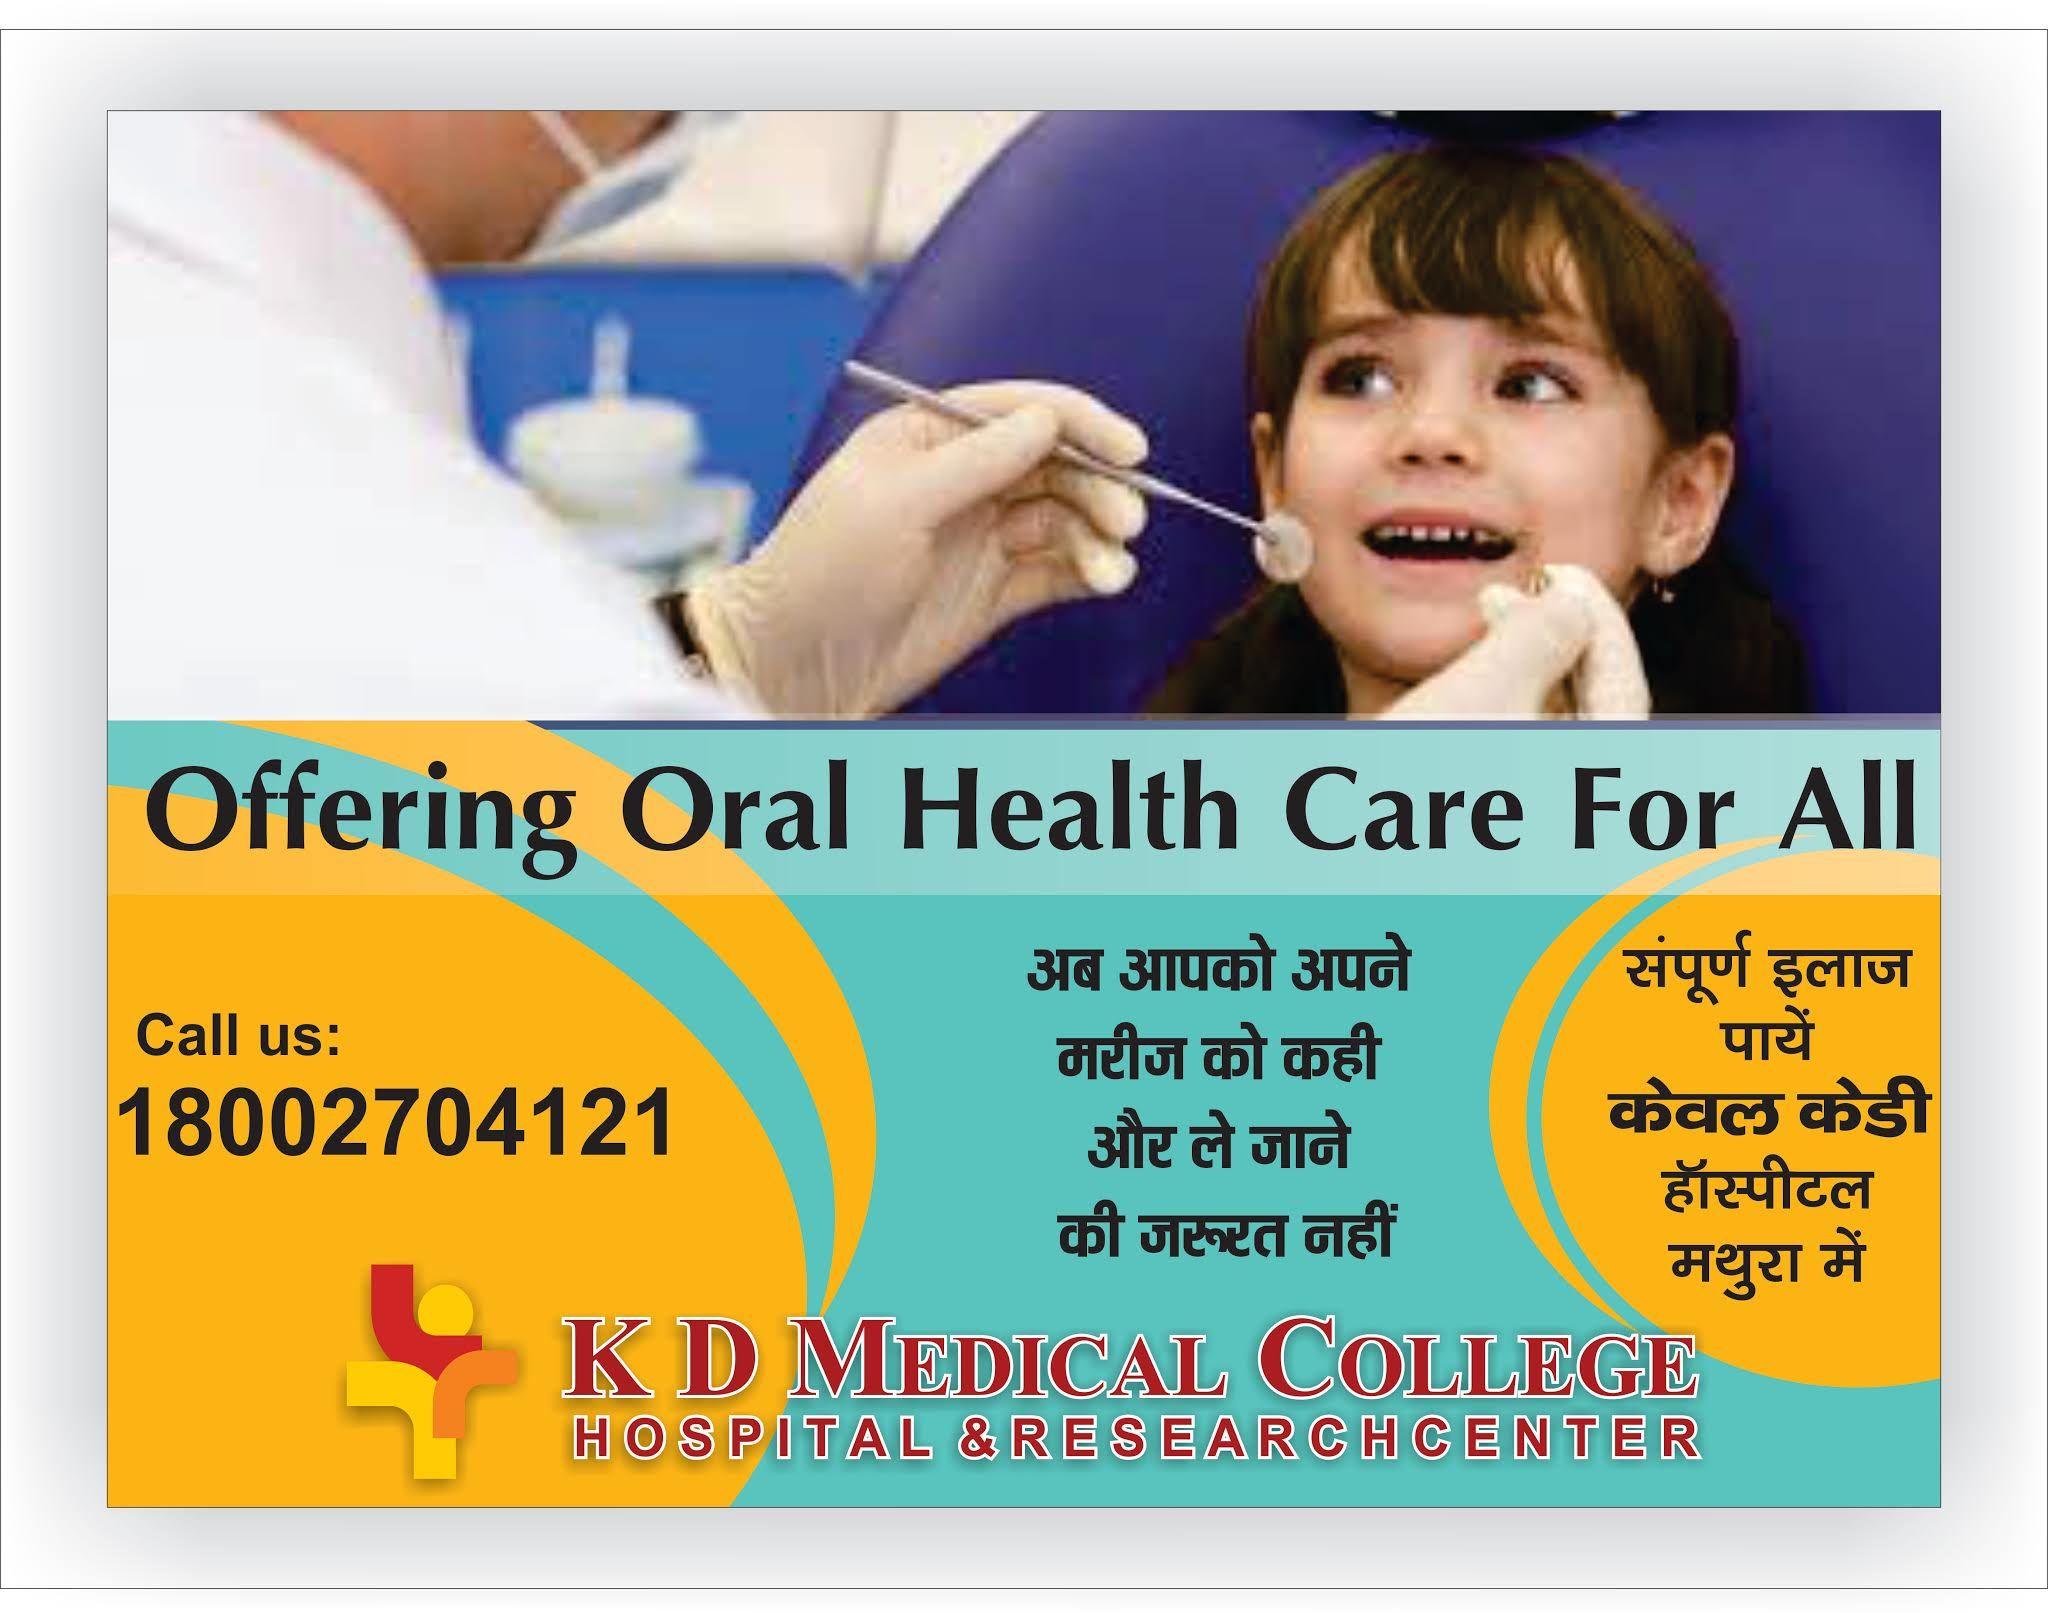 The Professional team of K D Medical College Hospital and Research